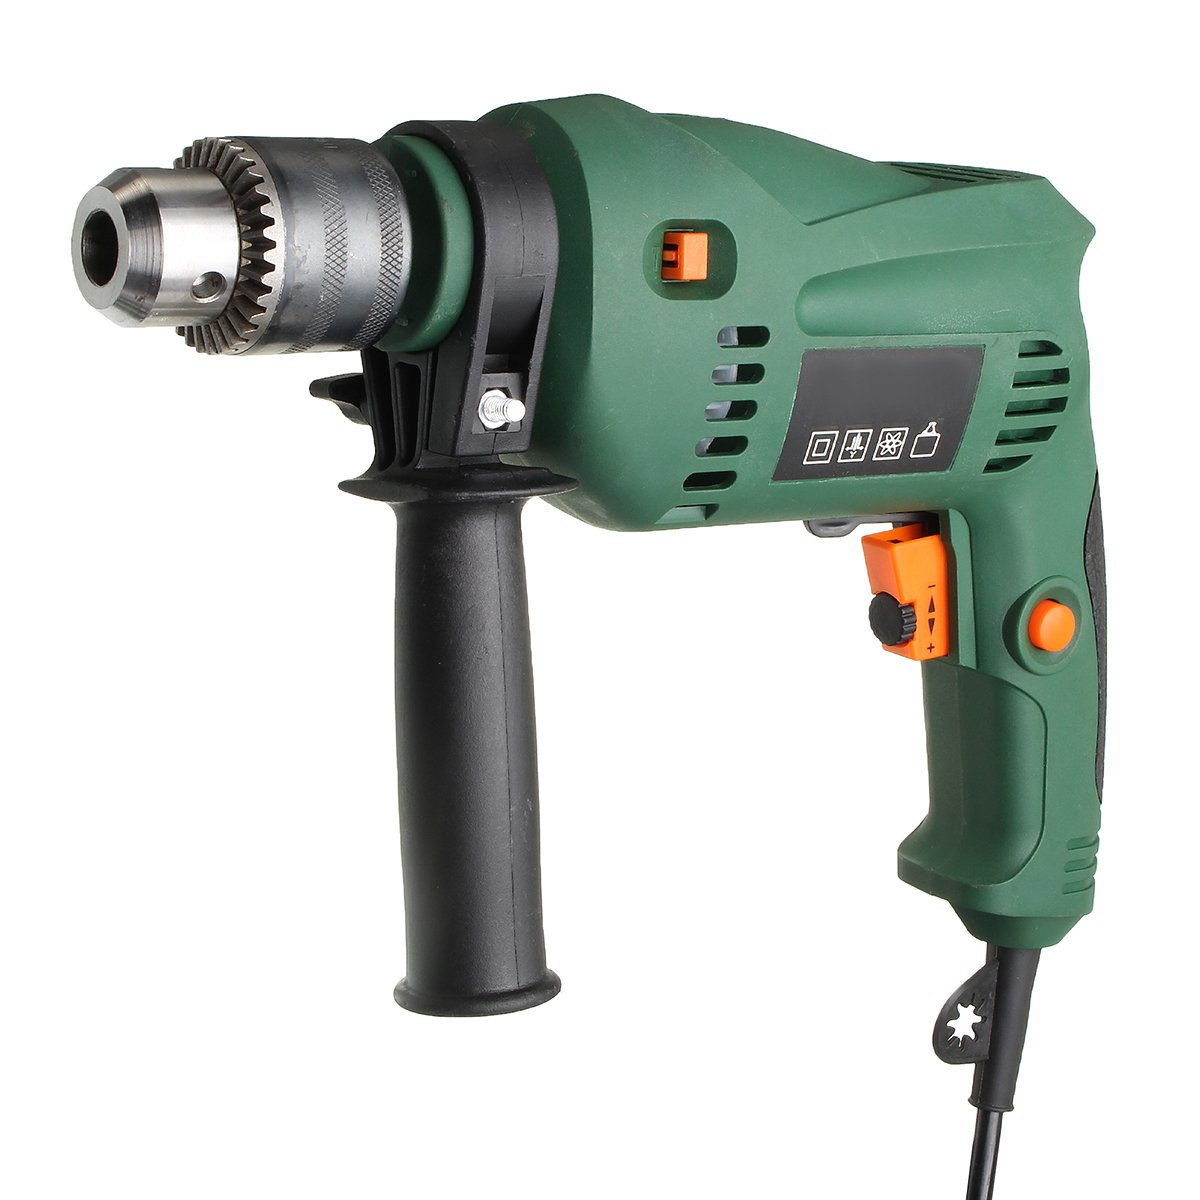 Raitool 220V 1580W Electric Power Drill Impact Duty 13mm Chuck Speed Drill Set